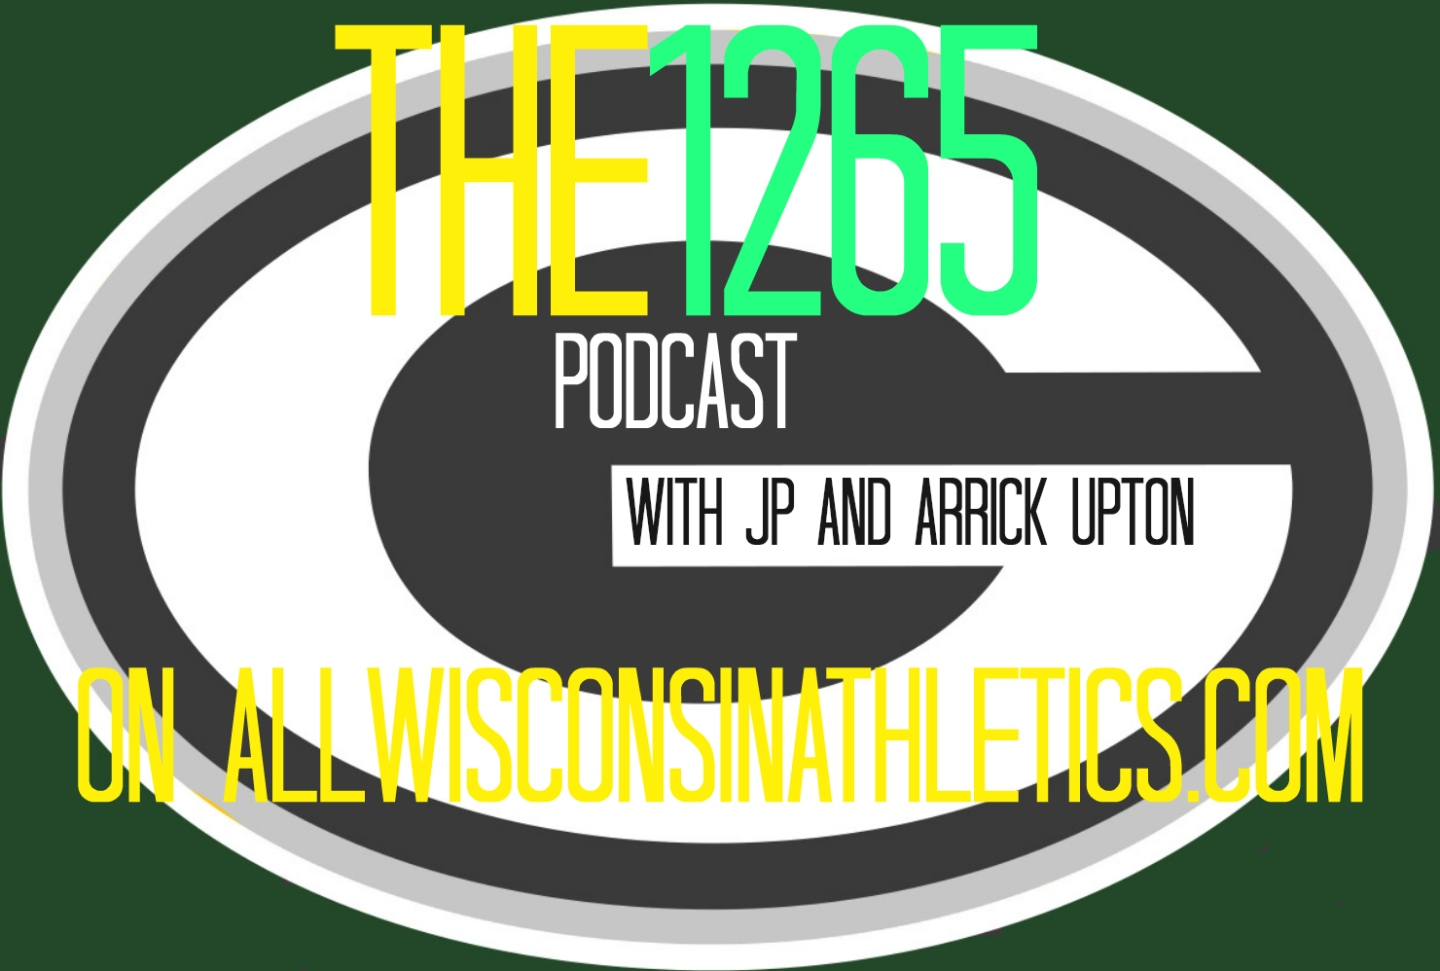 The 1265 Podcast: NFL Free Agency and Previewing the Draft with BurkeGriffin